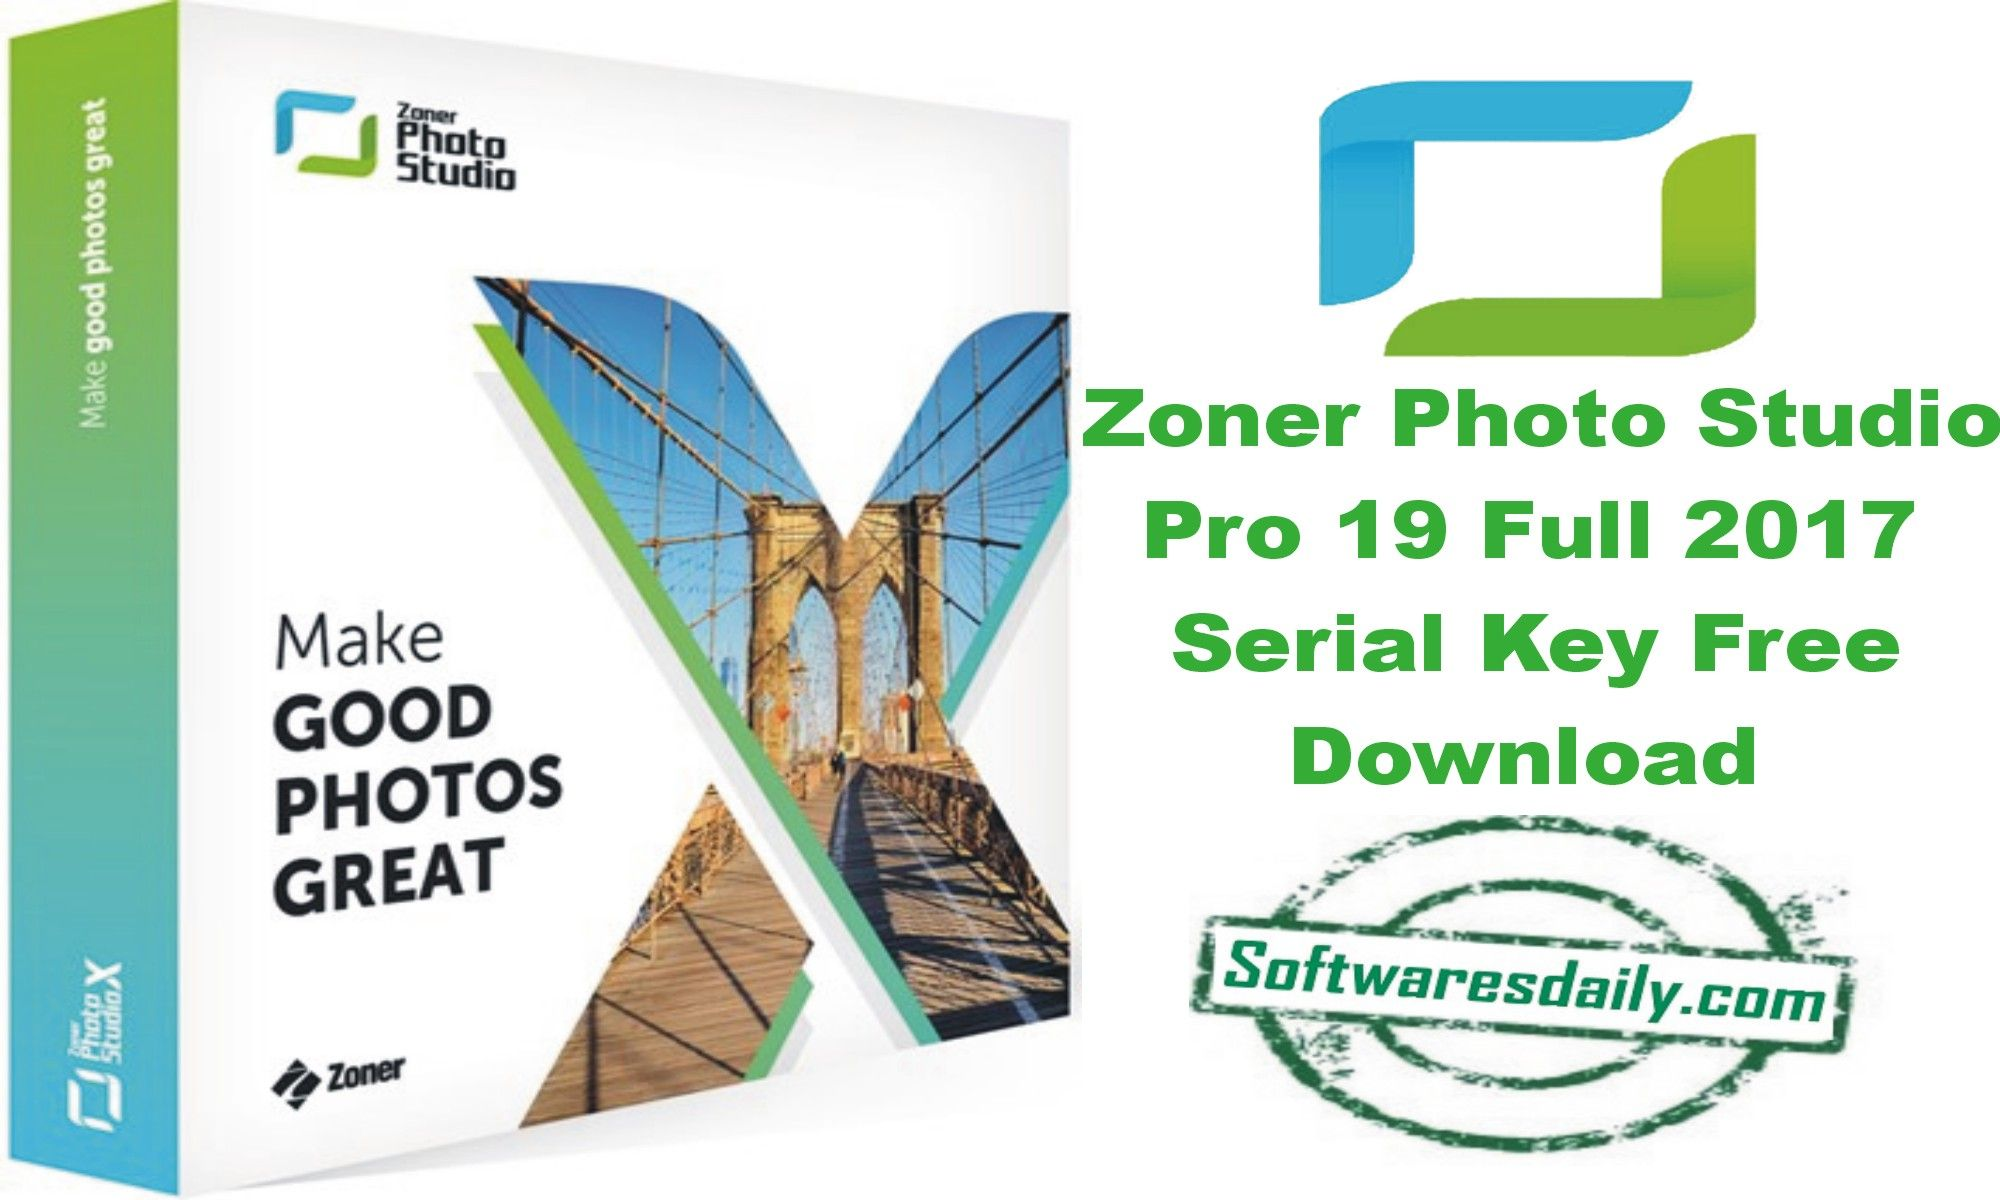 Zoner Studio Pro 19 Full 2017 Serial Key Free Download